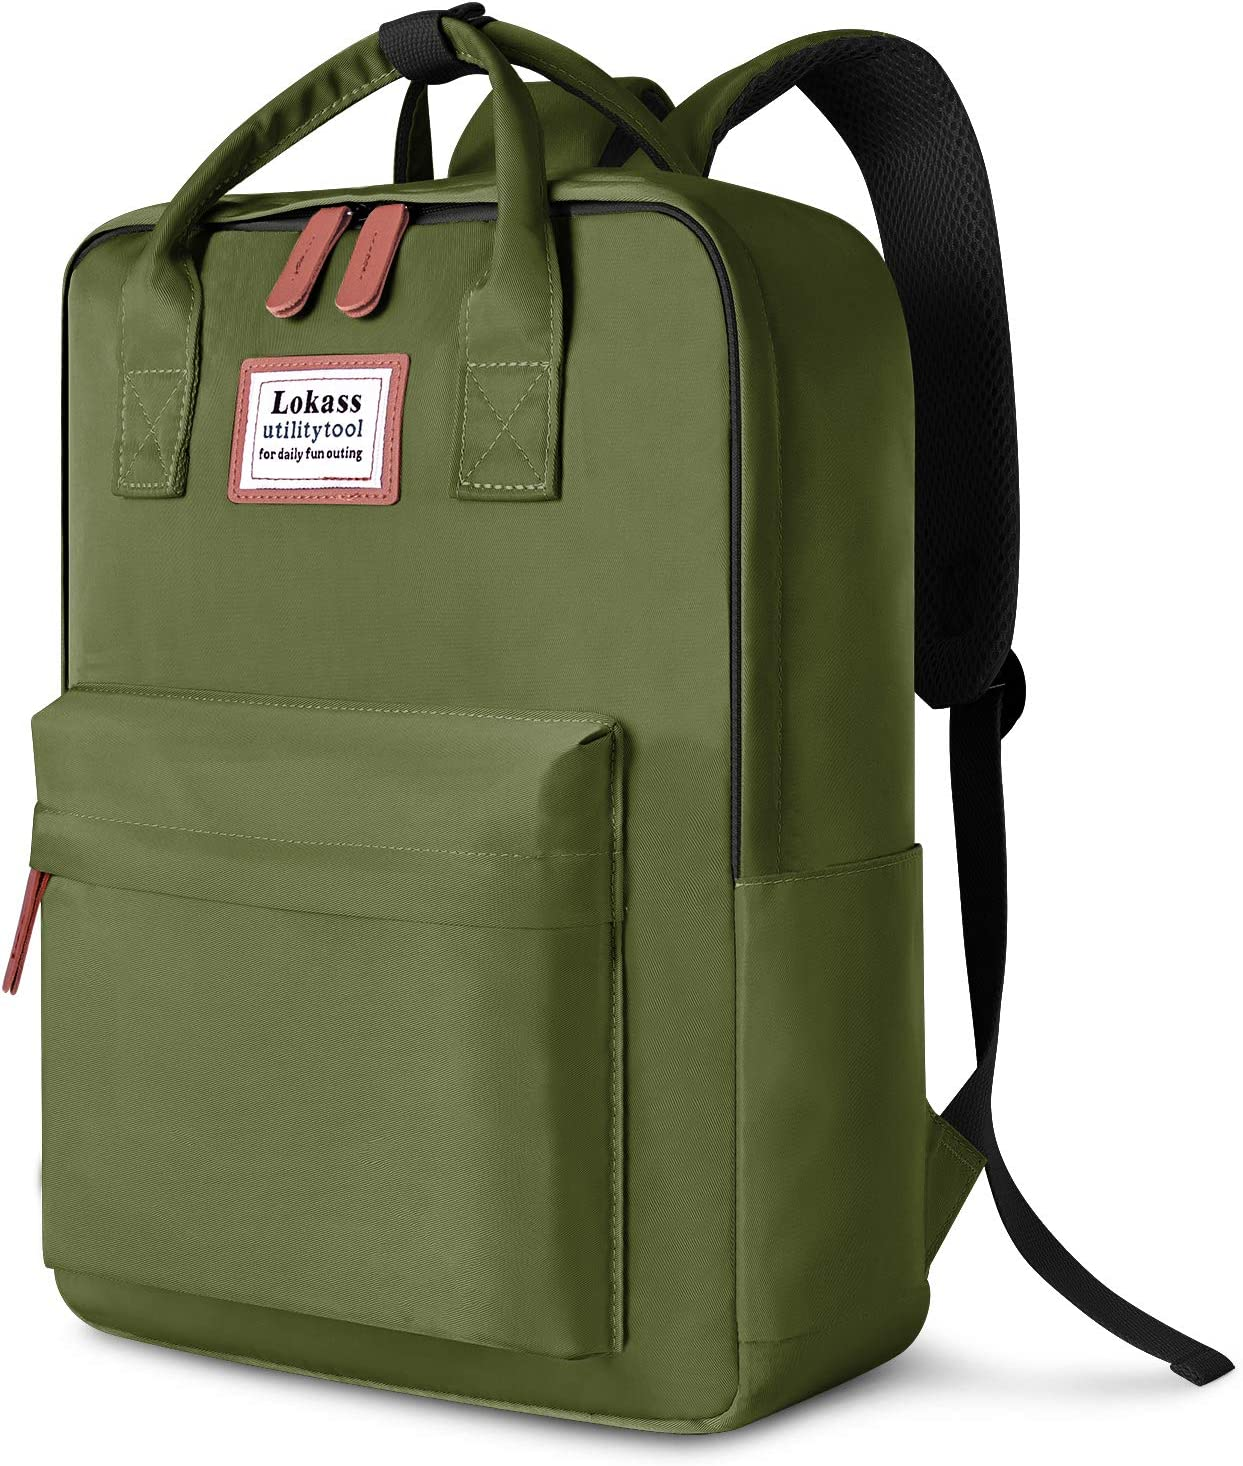 SOCKO Laptop Backpack for Women Men Stylish College Backpack School Bag Lightweight Bookbag Travel Work Carry On Backpack Casual Daypack Rucksack Computer Bag Fits up to 15.6 Inch Laptop, Green